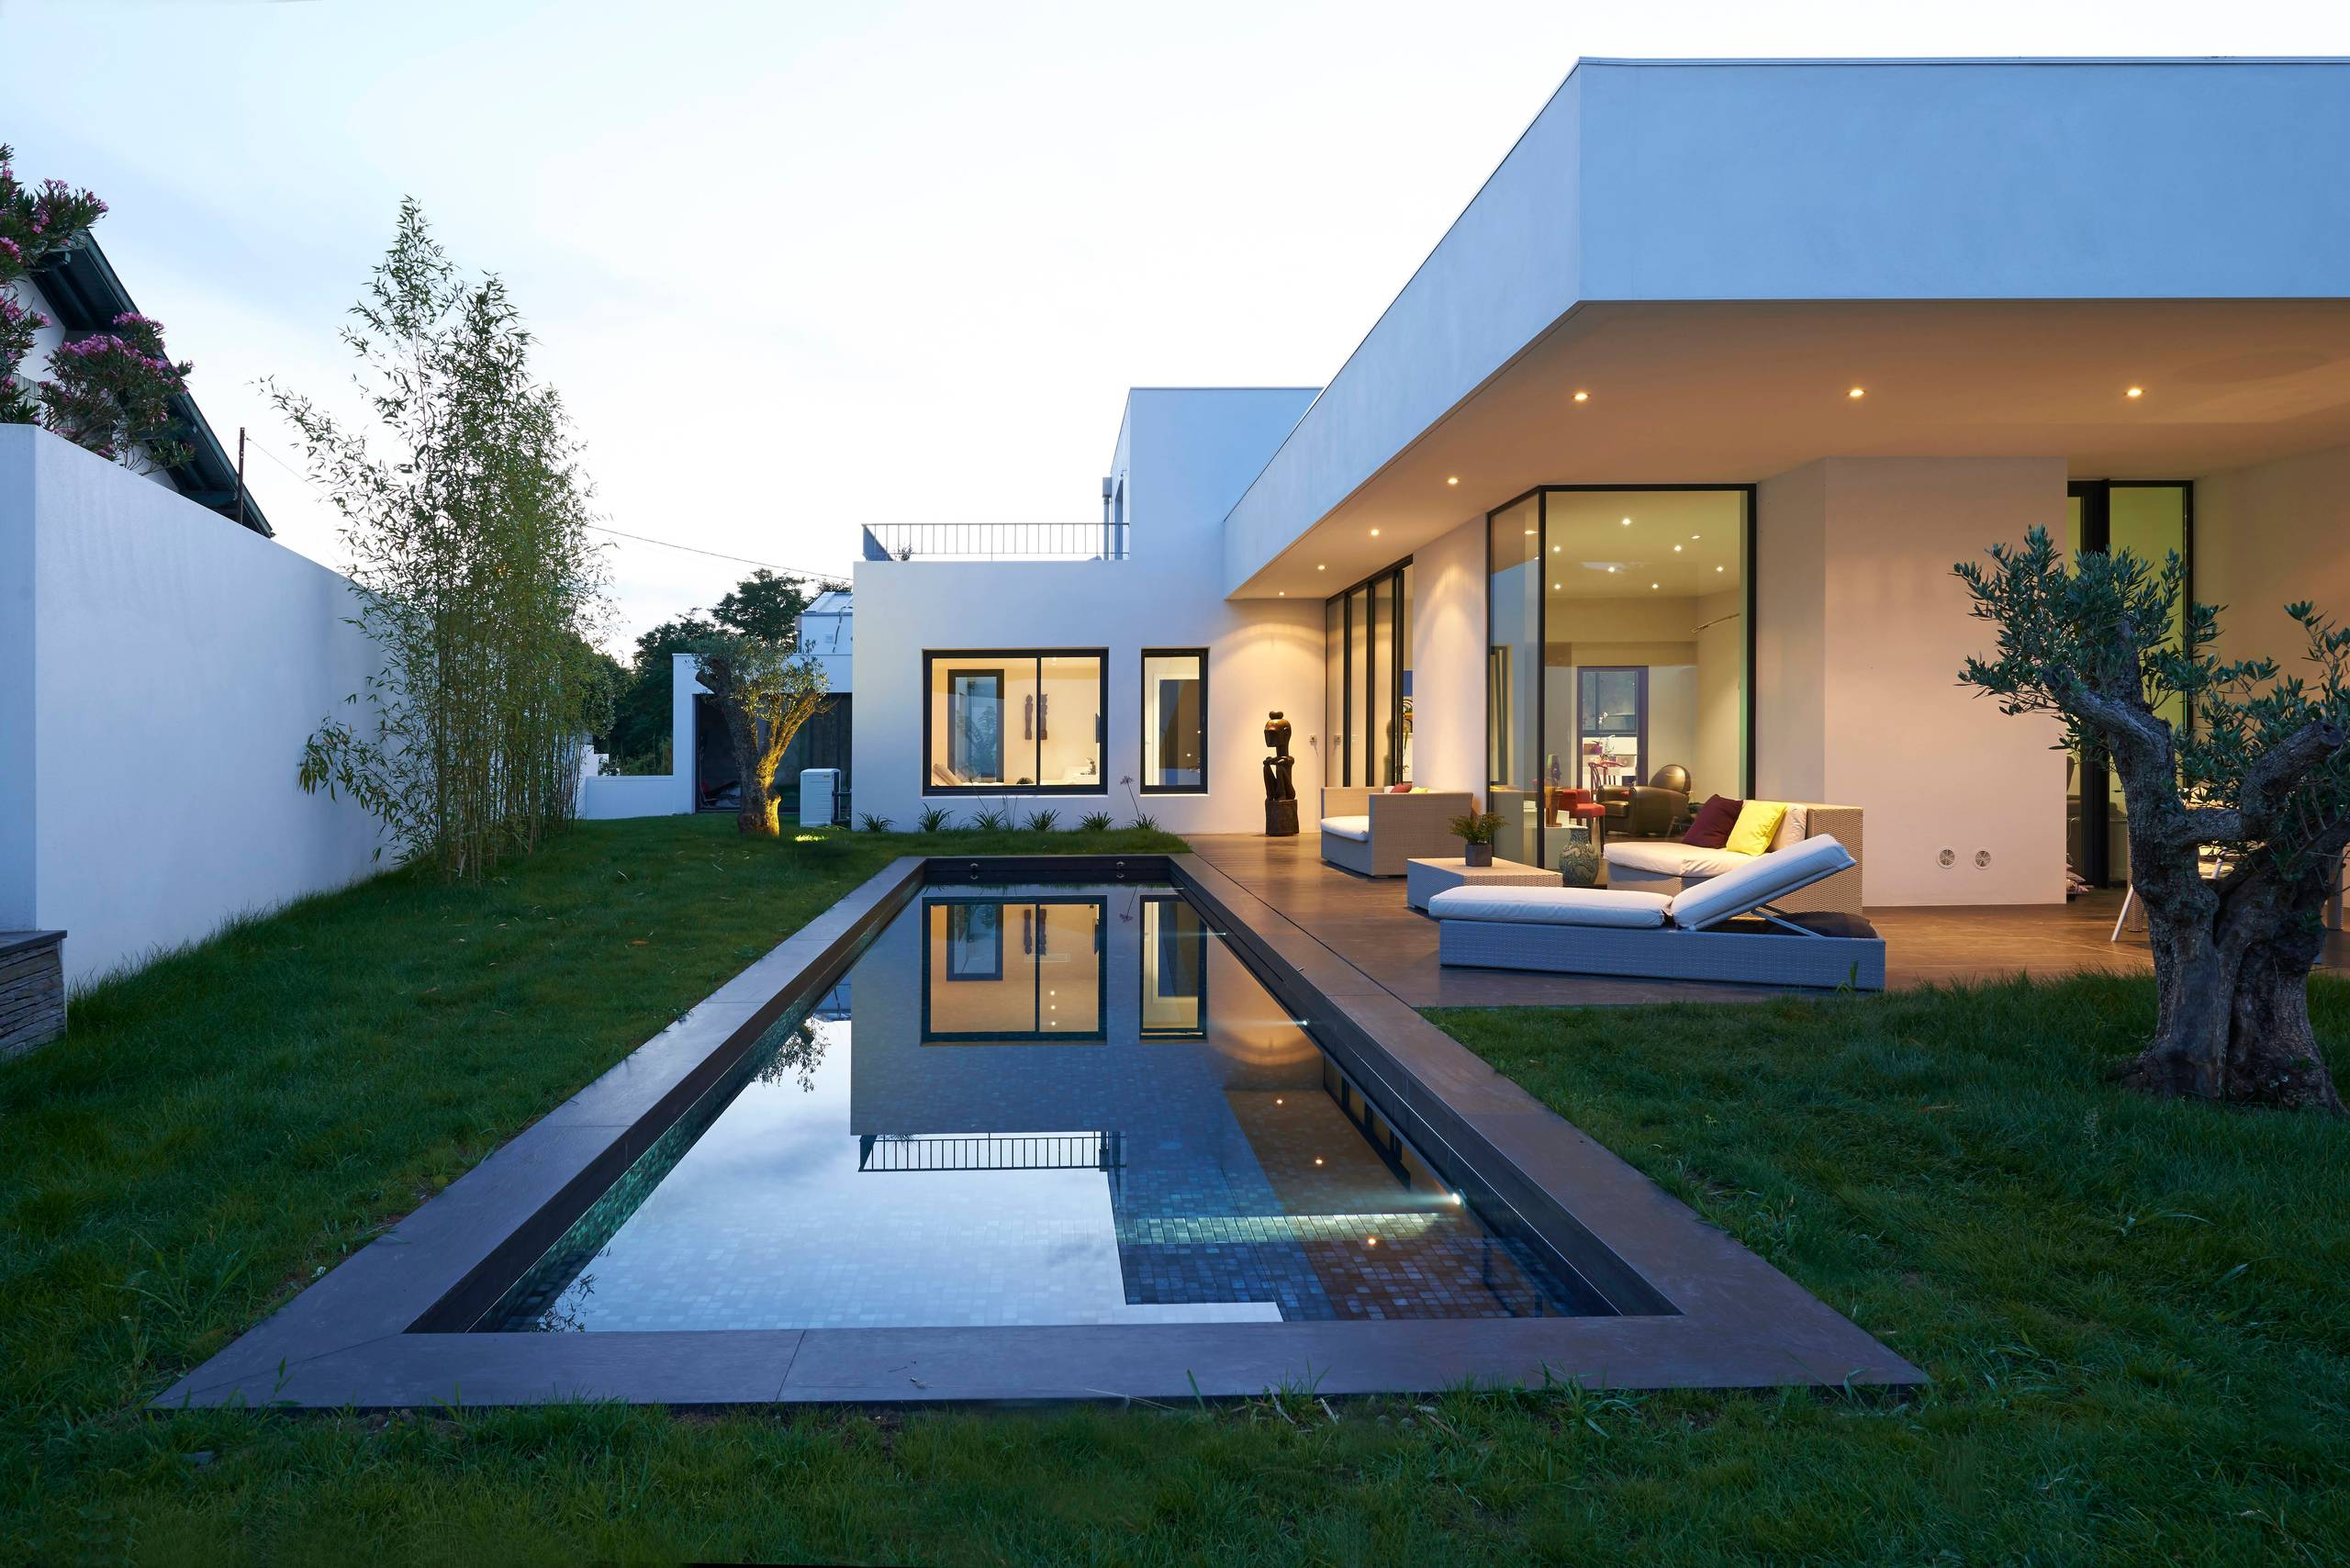 18 Dazzling Modern Swimming Pool Designs - The Ultimate ... on Modern Backyard Ideas With Pool id=28273